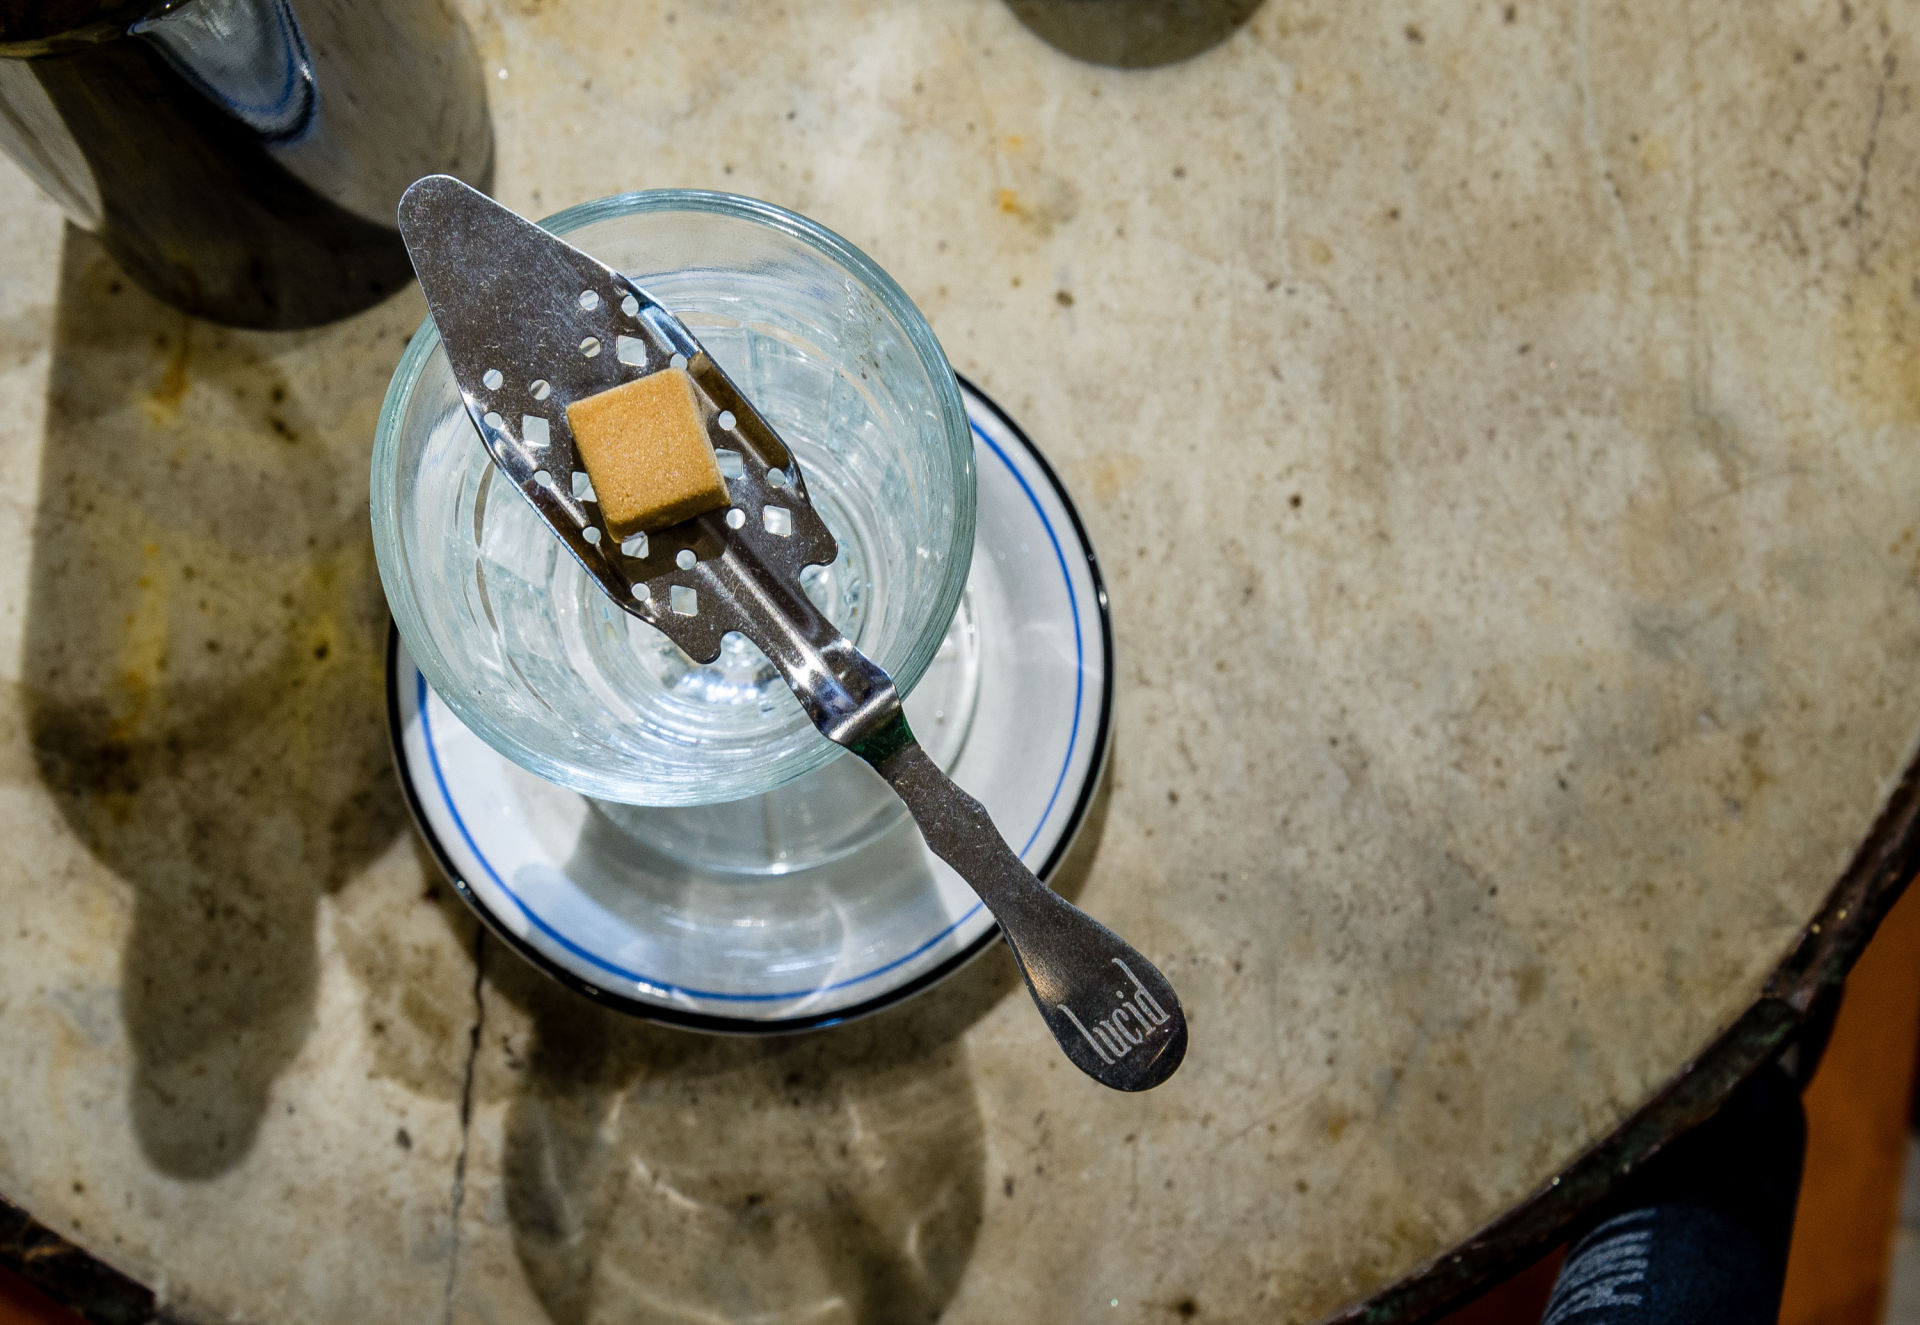 A sugar cube is cradled by a slotted spoon balanced on top of a glass of absinthe.